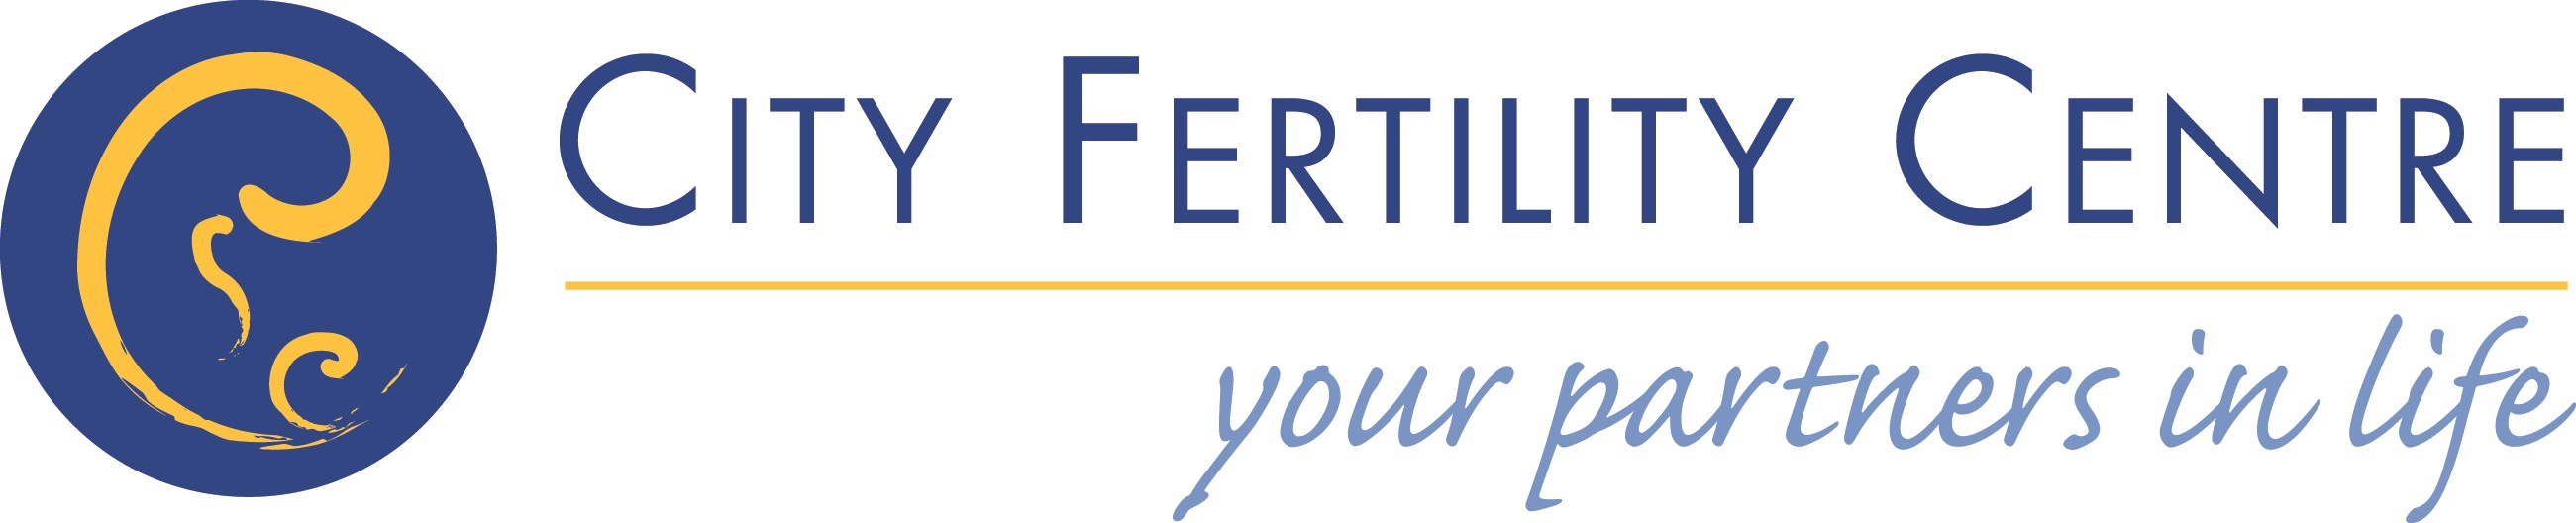 City Fertility